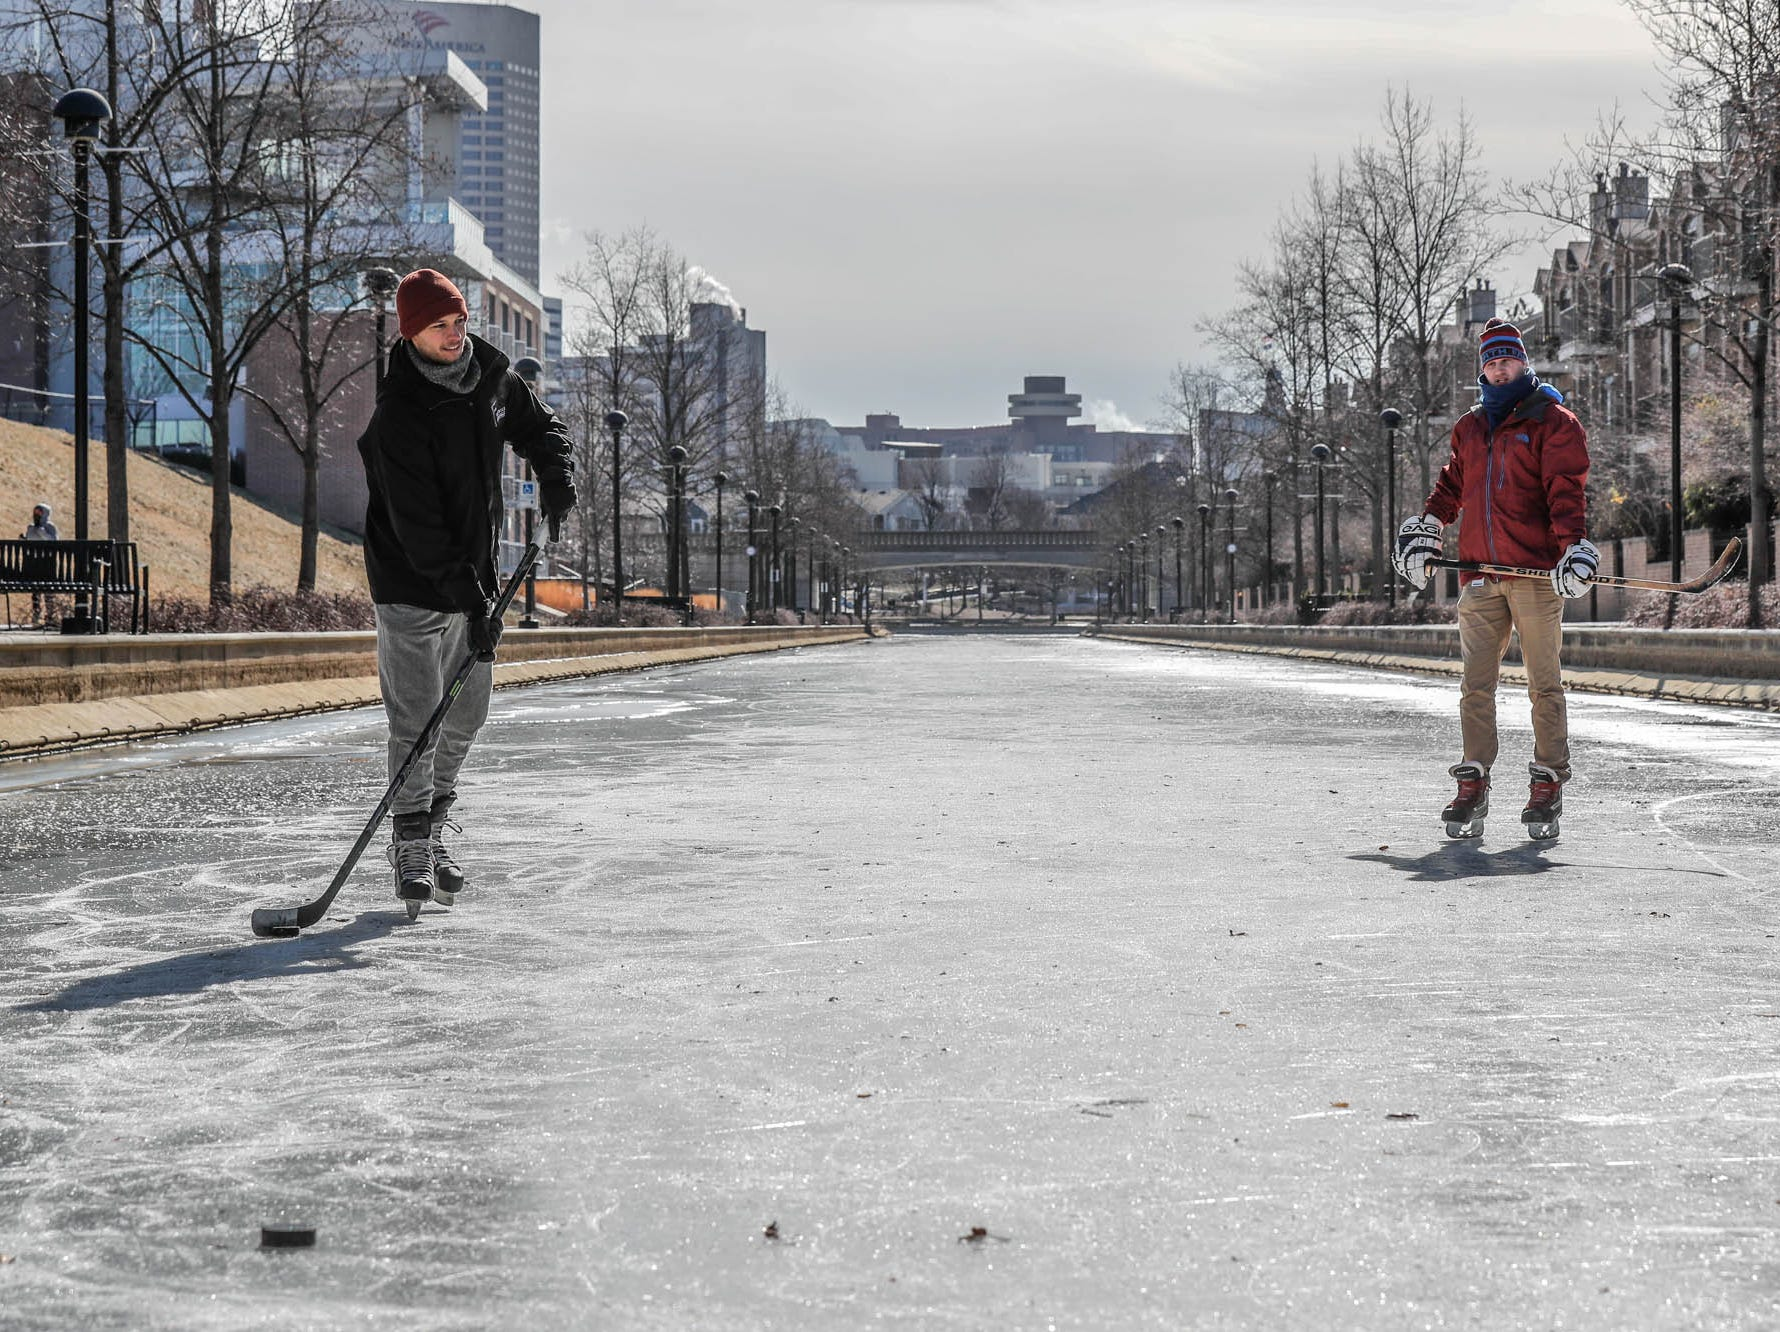 Left to right, friends Charlie Hornett, Jackson Richey and Chase Fairchild, not shown here, get some free ice time to practice hockey skills on the downtown Indianapolis canal on Thursday, Jan. 31, 2019.